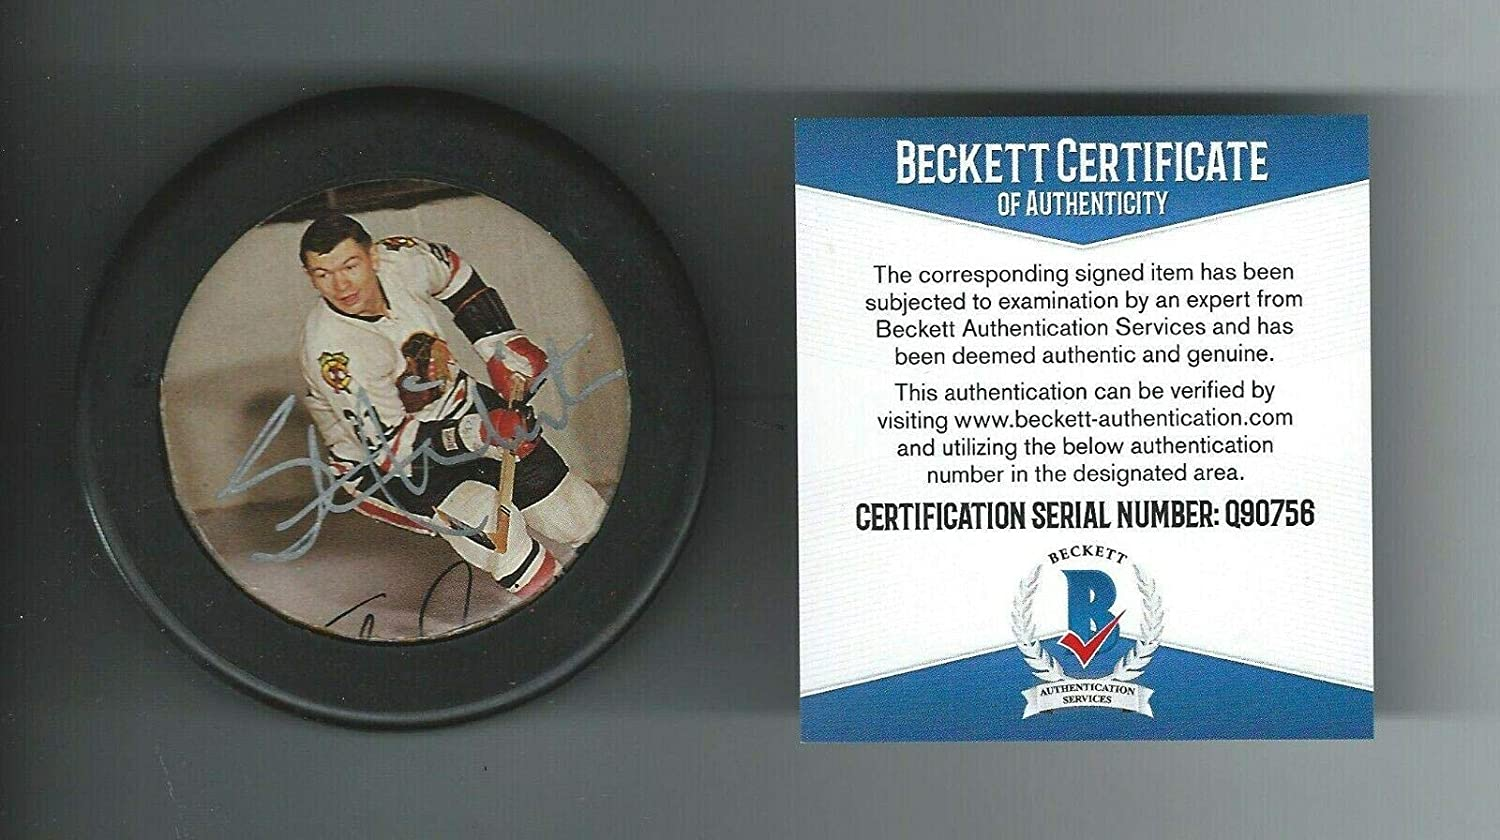 Stan Mikita Autographed Puck - Photo Beckett COA - Beckett Authentication - Autographed NHL Pucks